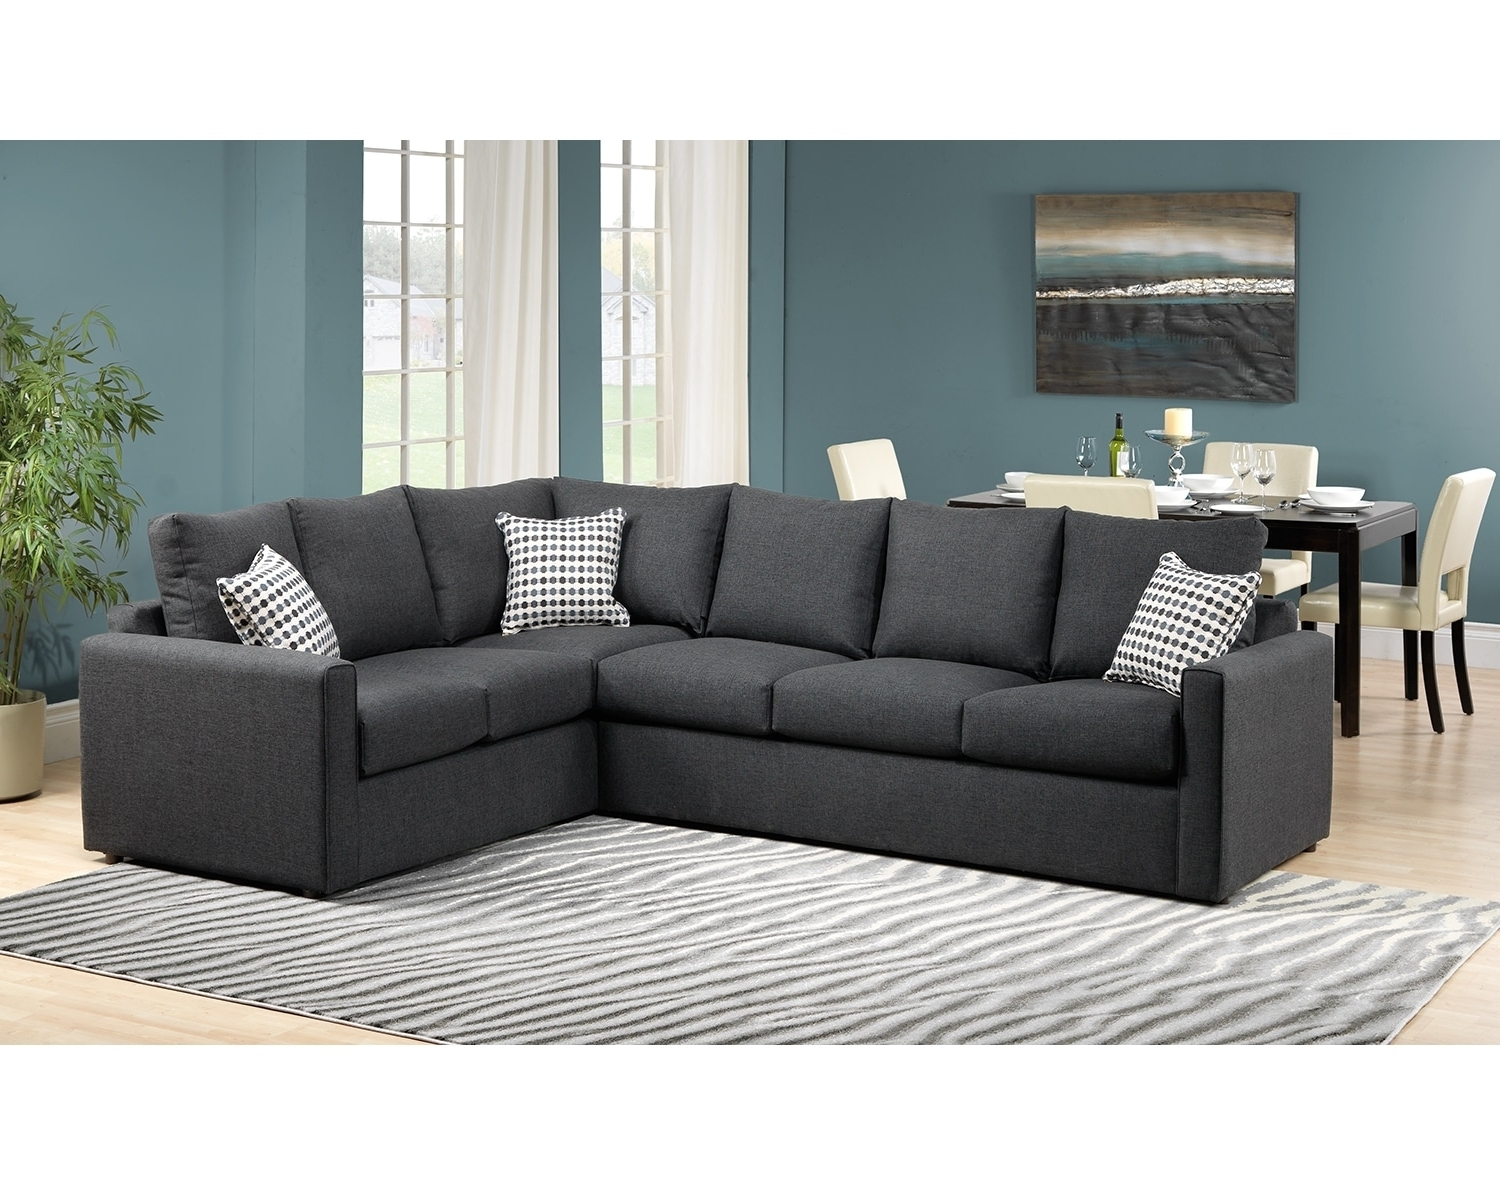 Most Current Athina 2 Piece Sectional With Left Facing Queen Sofa Bed For Sectional Sofas At Brampton (View 6 of 15)